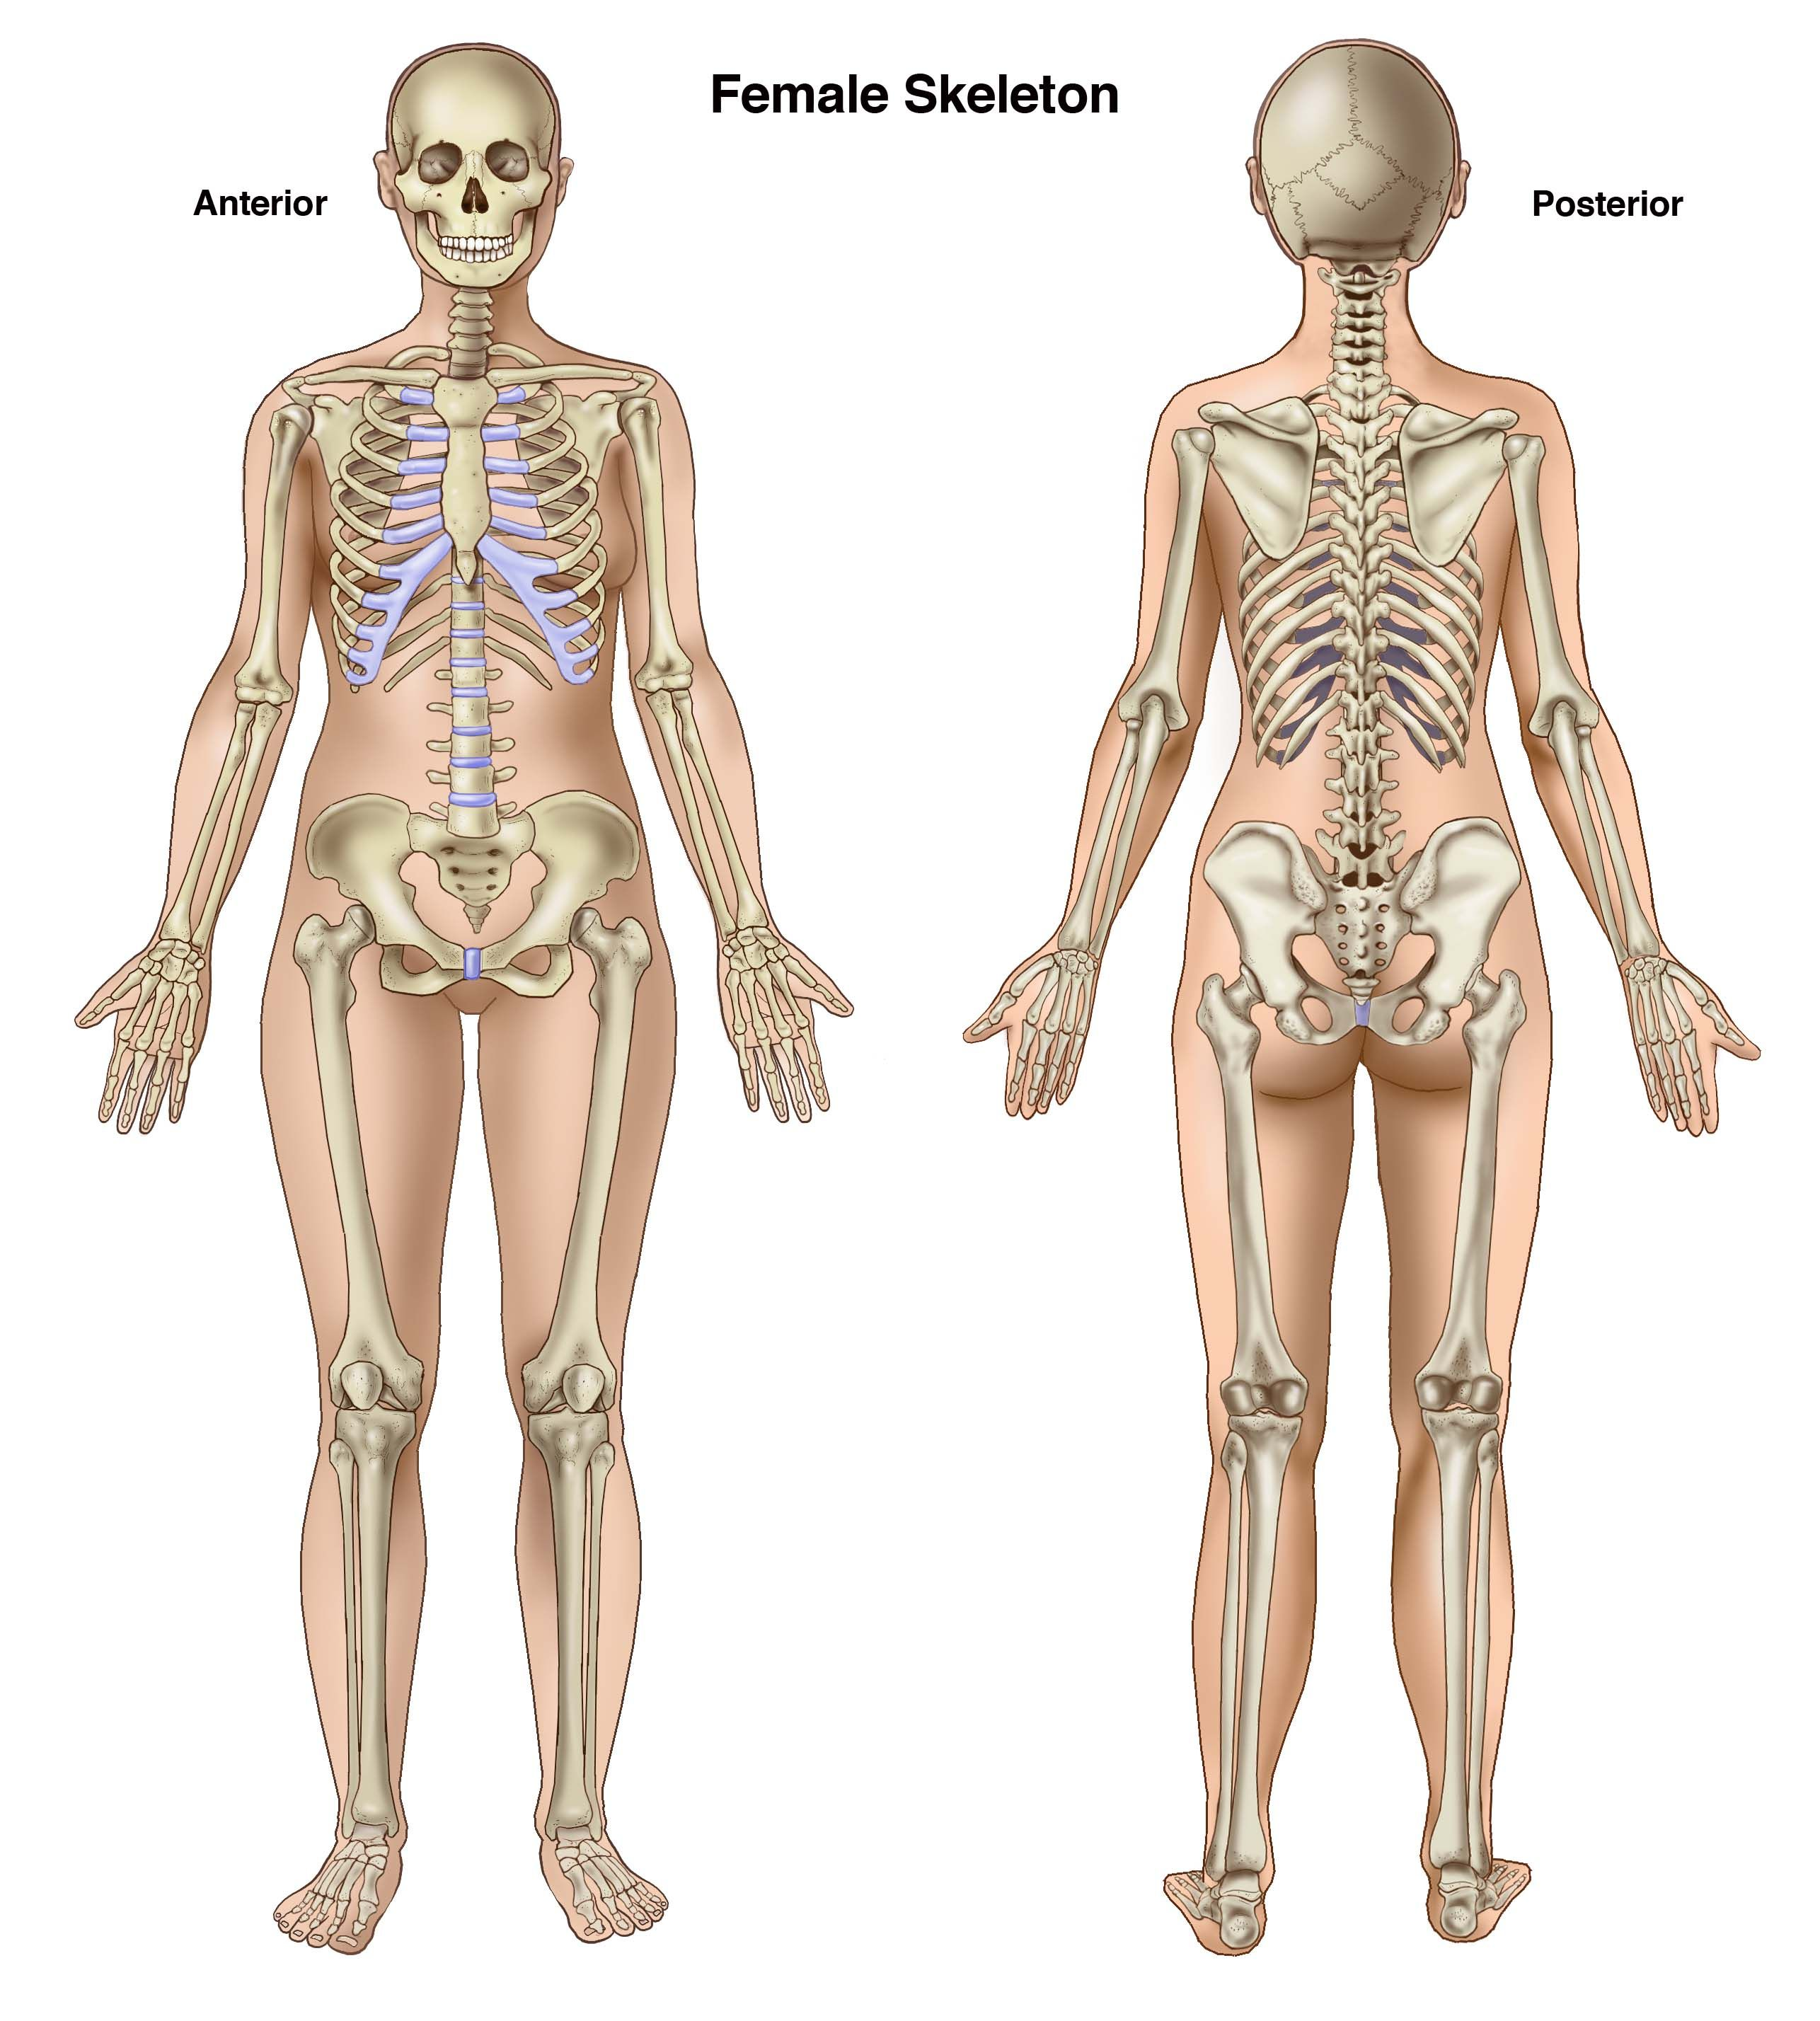 anterior view female skeletal - google search | medical, Skeleton